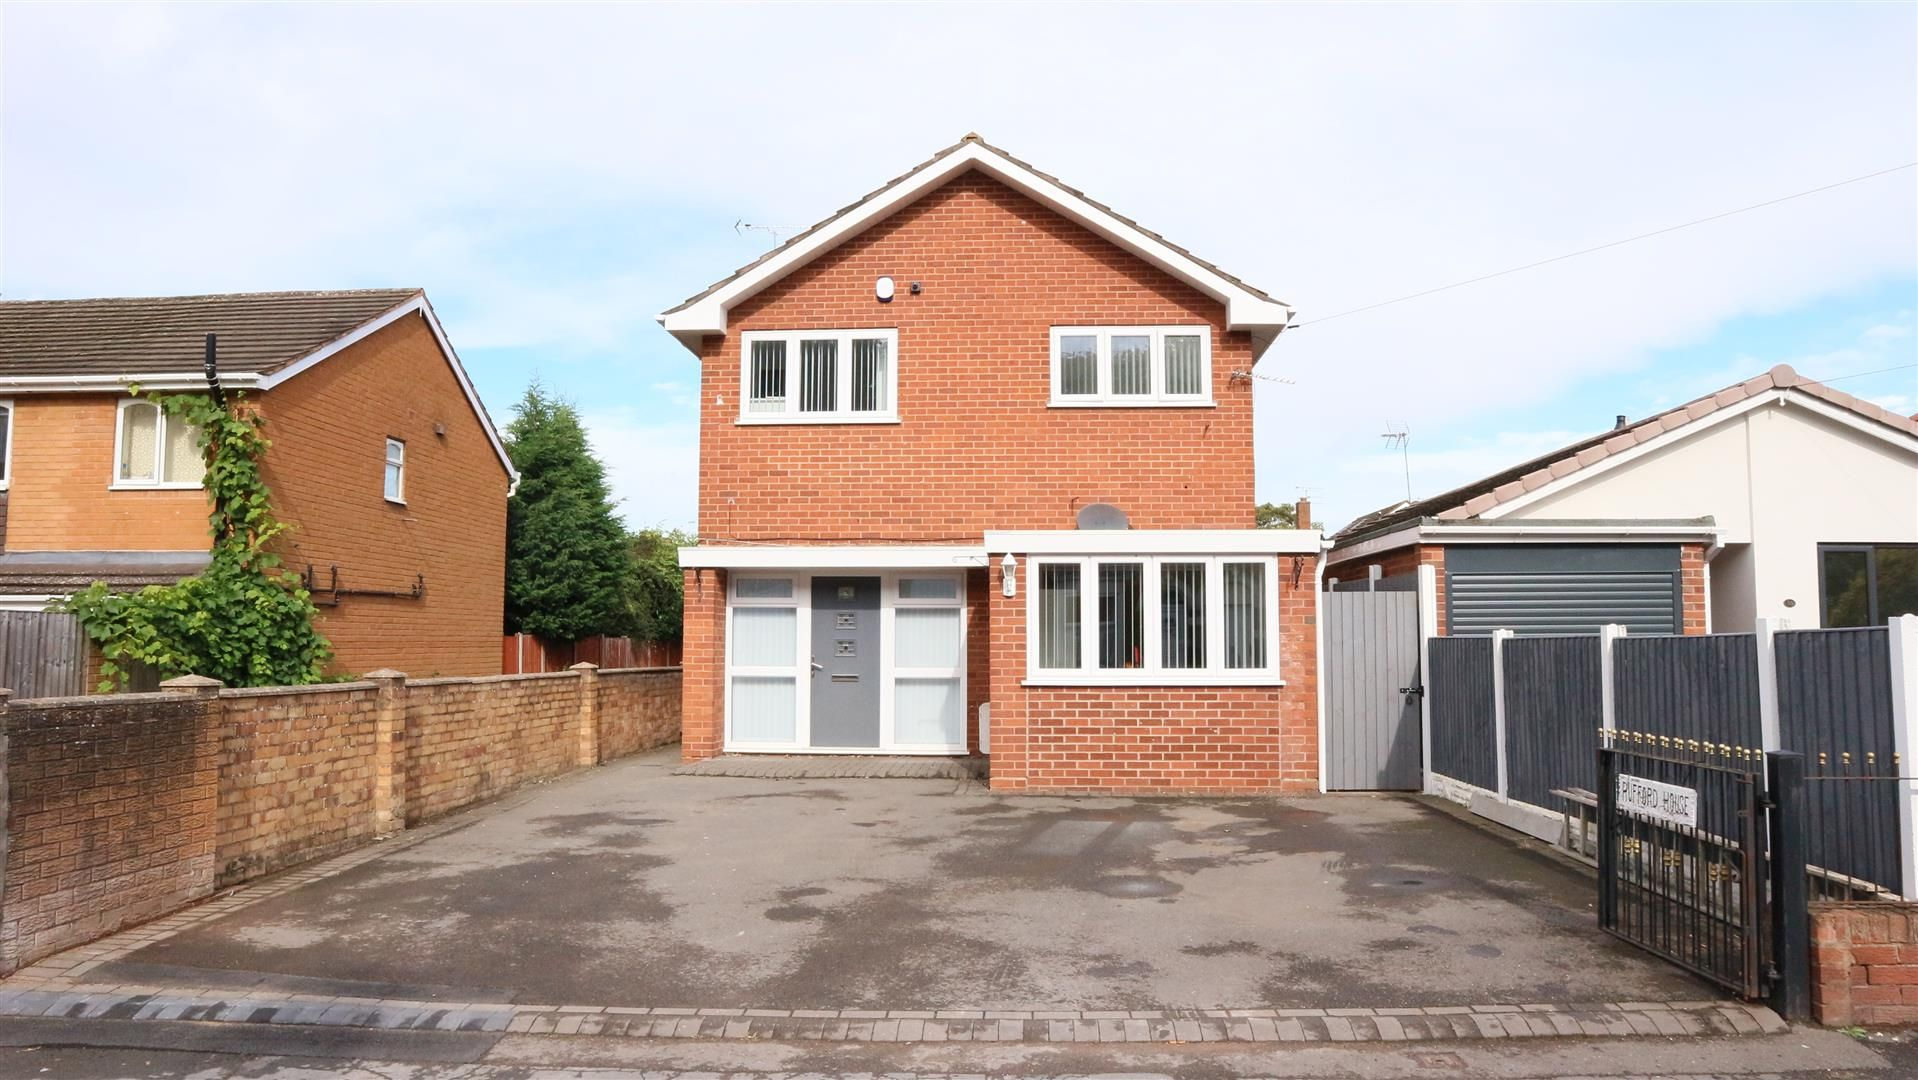 6 bed detached for sale 22